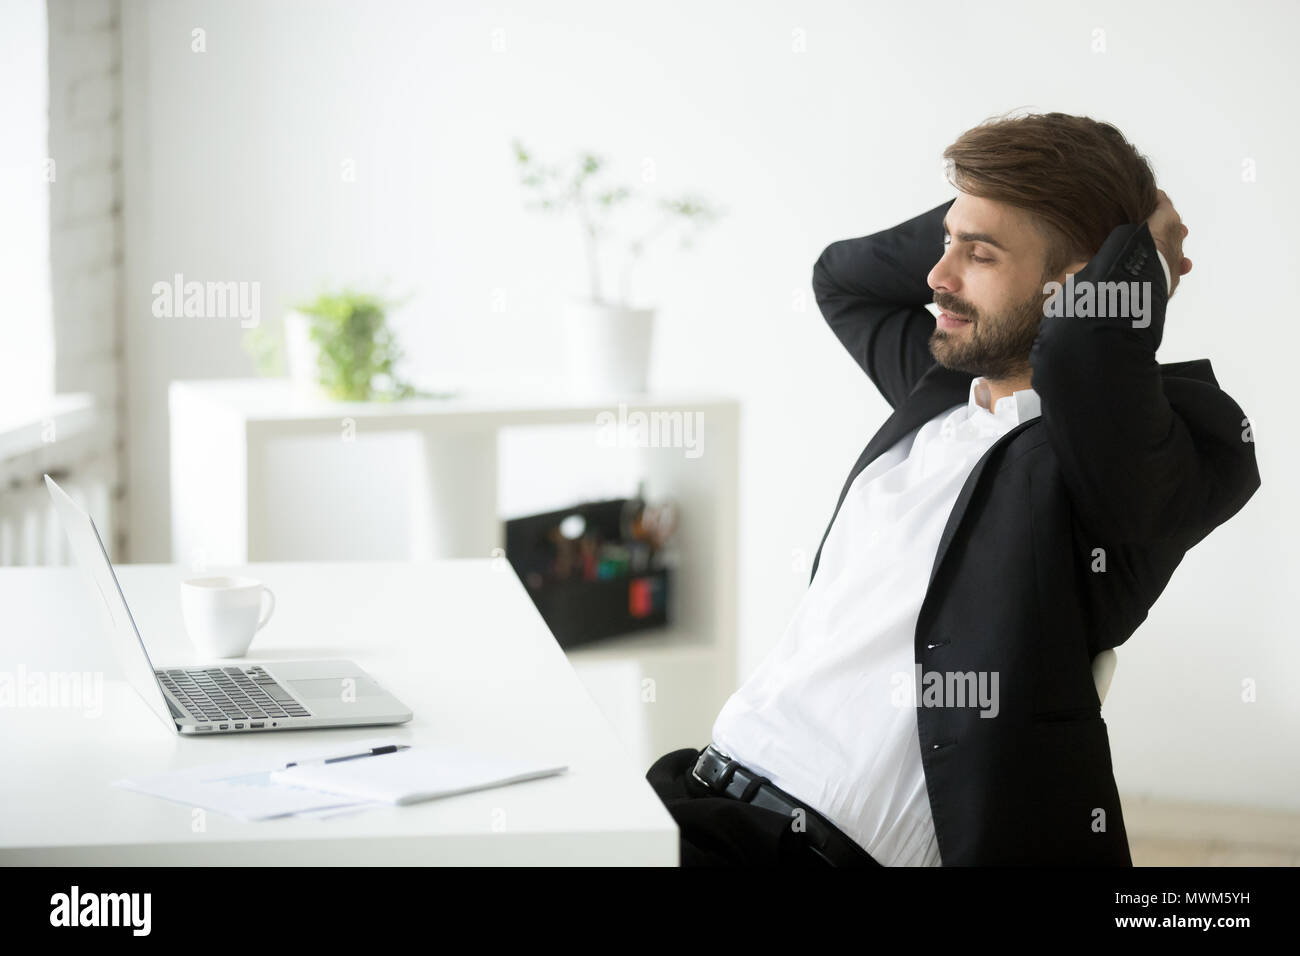 Satisfied businessman relaxing leaning back in chair - Stock Image